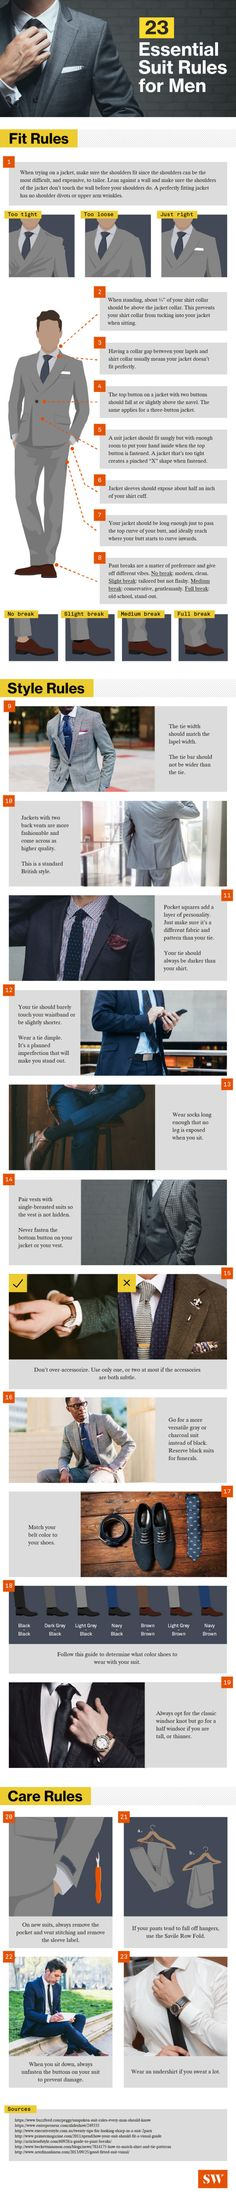 23 essential suit rules for men